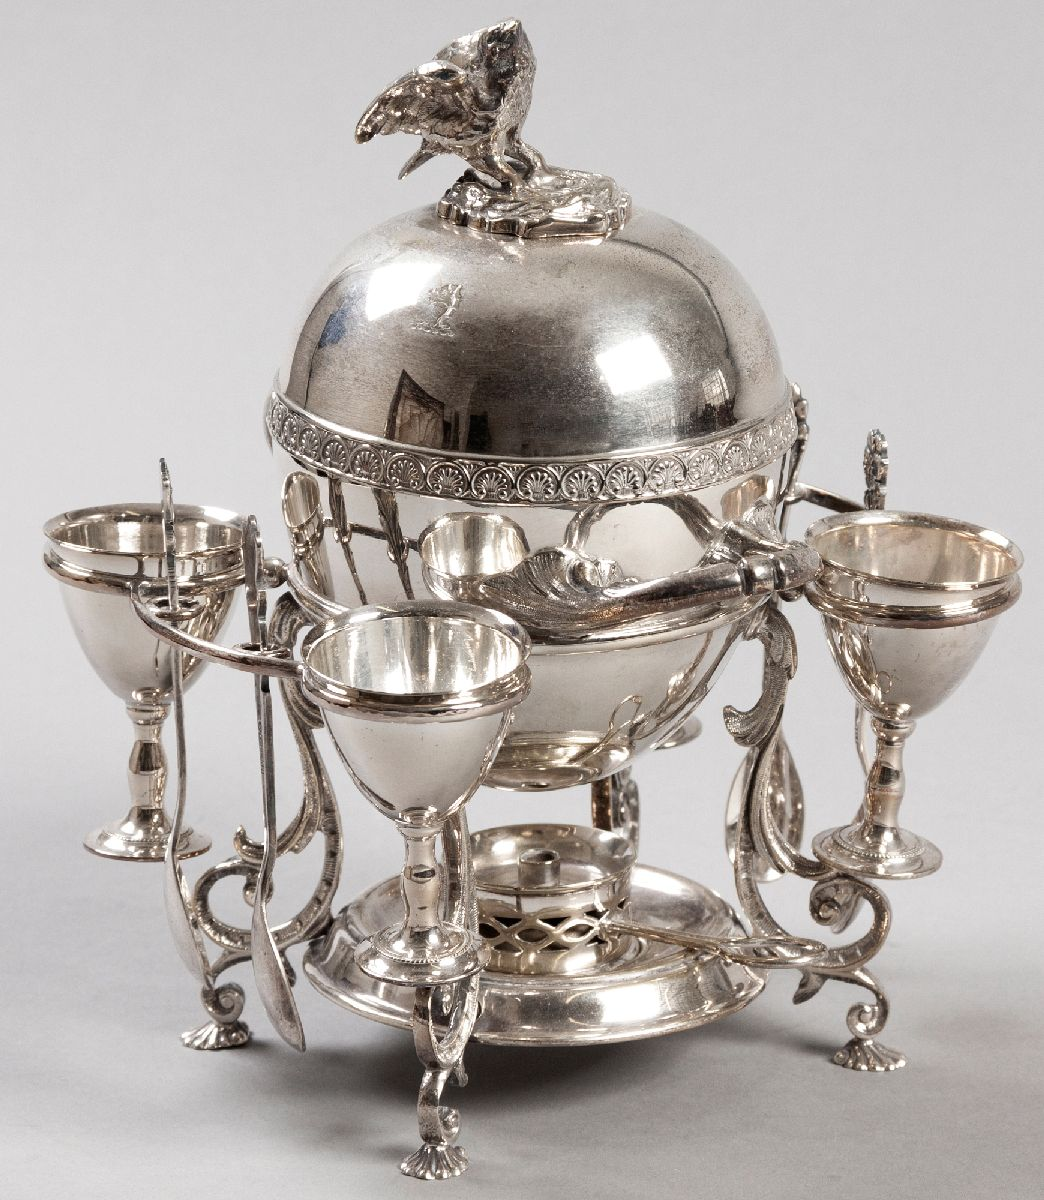 Lot 38 - A SILVERPLATE EGG CODDLER, the removable top with eagle-form finial, shell embossed border with twin